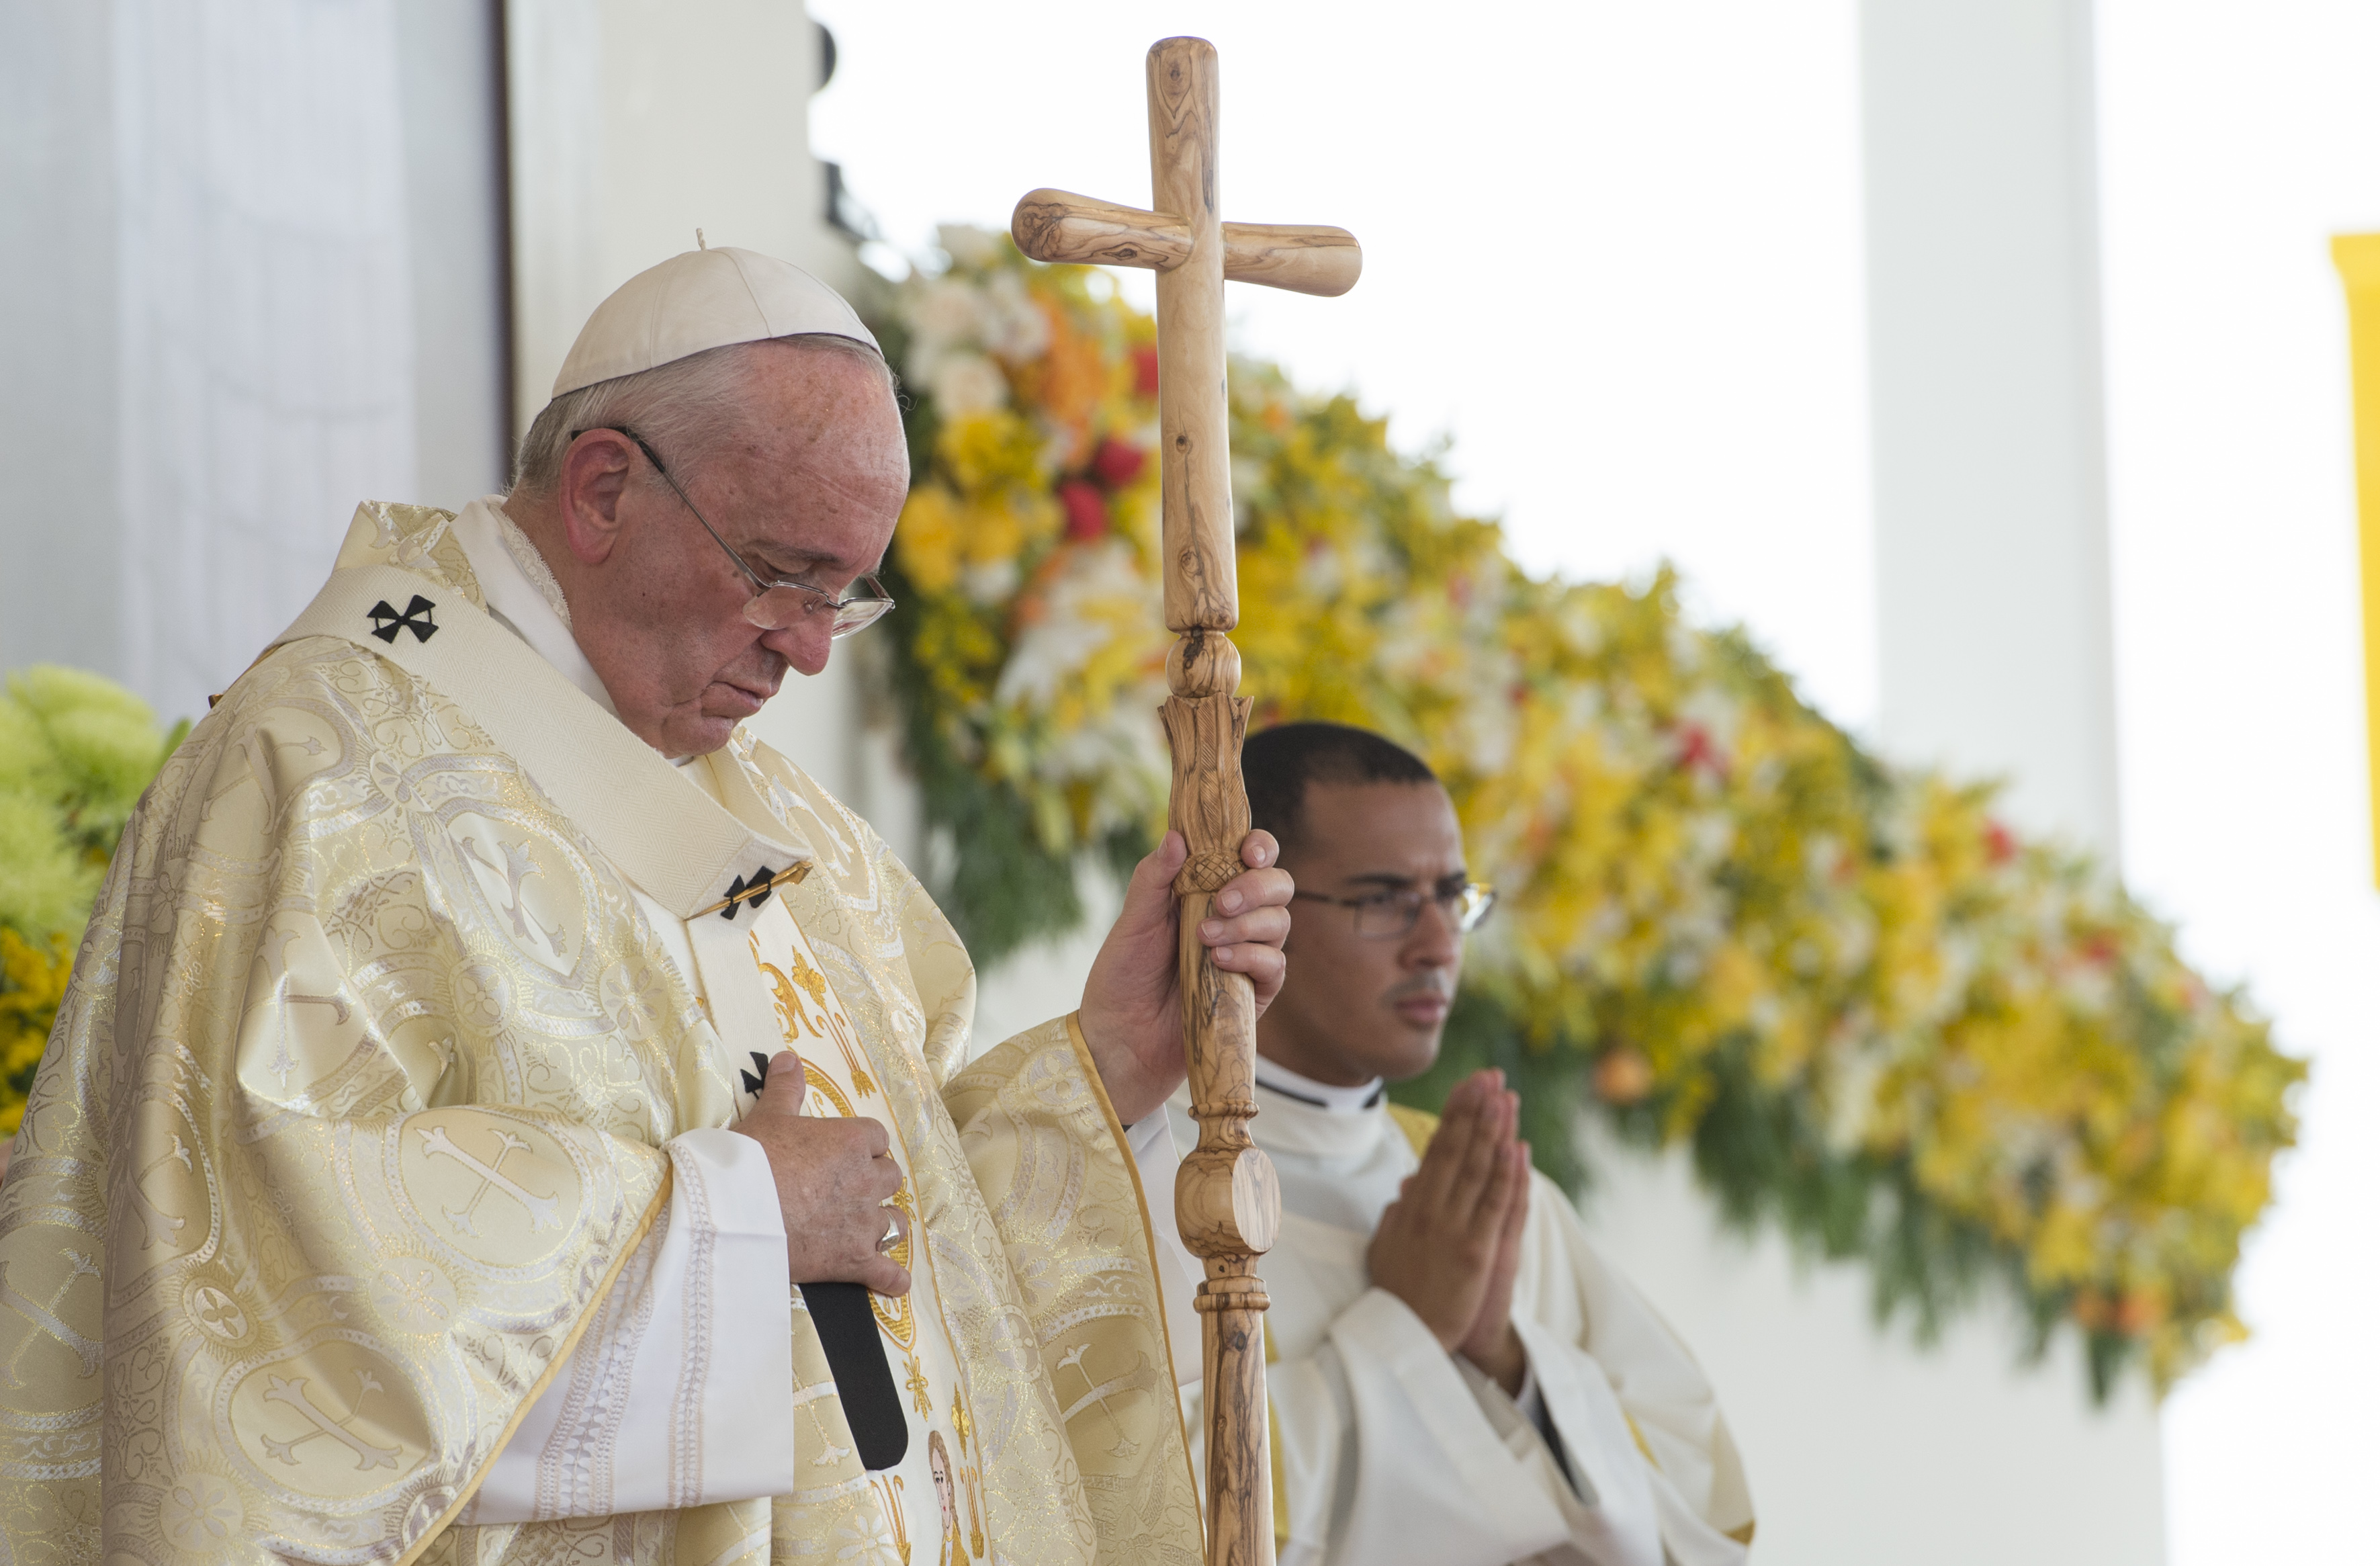 Pope Francis during Mass at the Samanes Park in Guayaquil